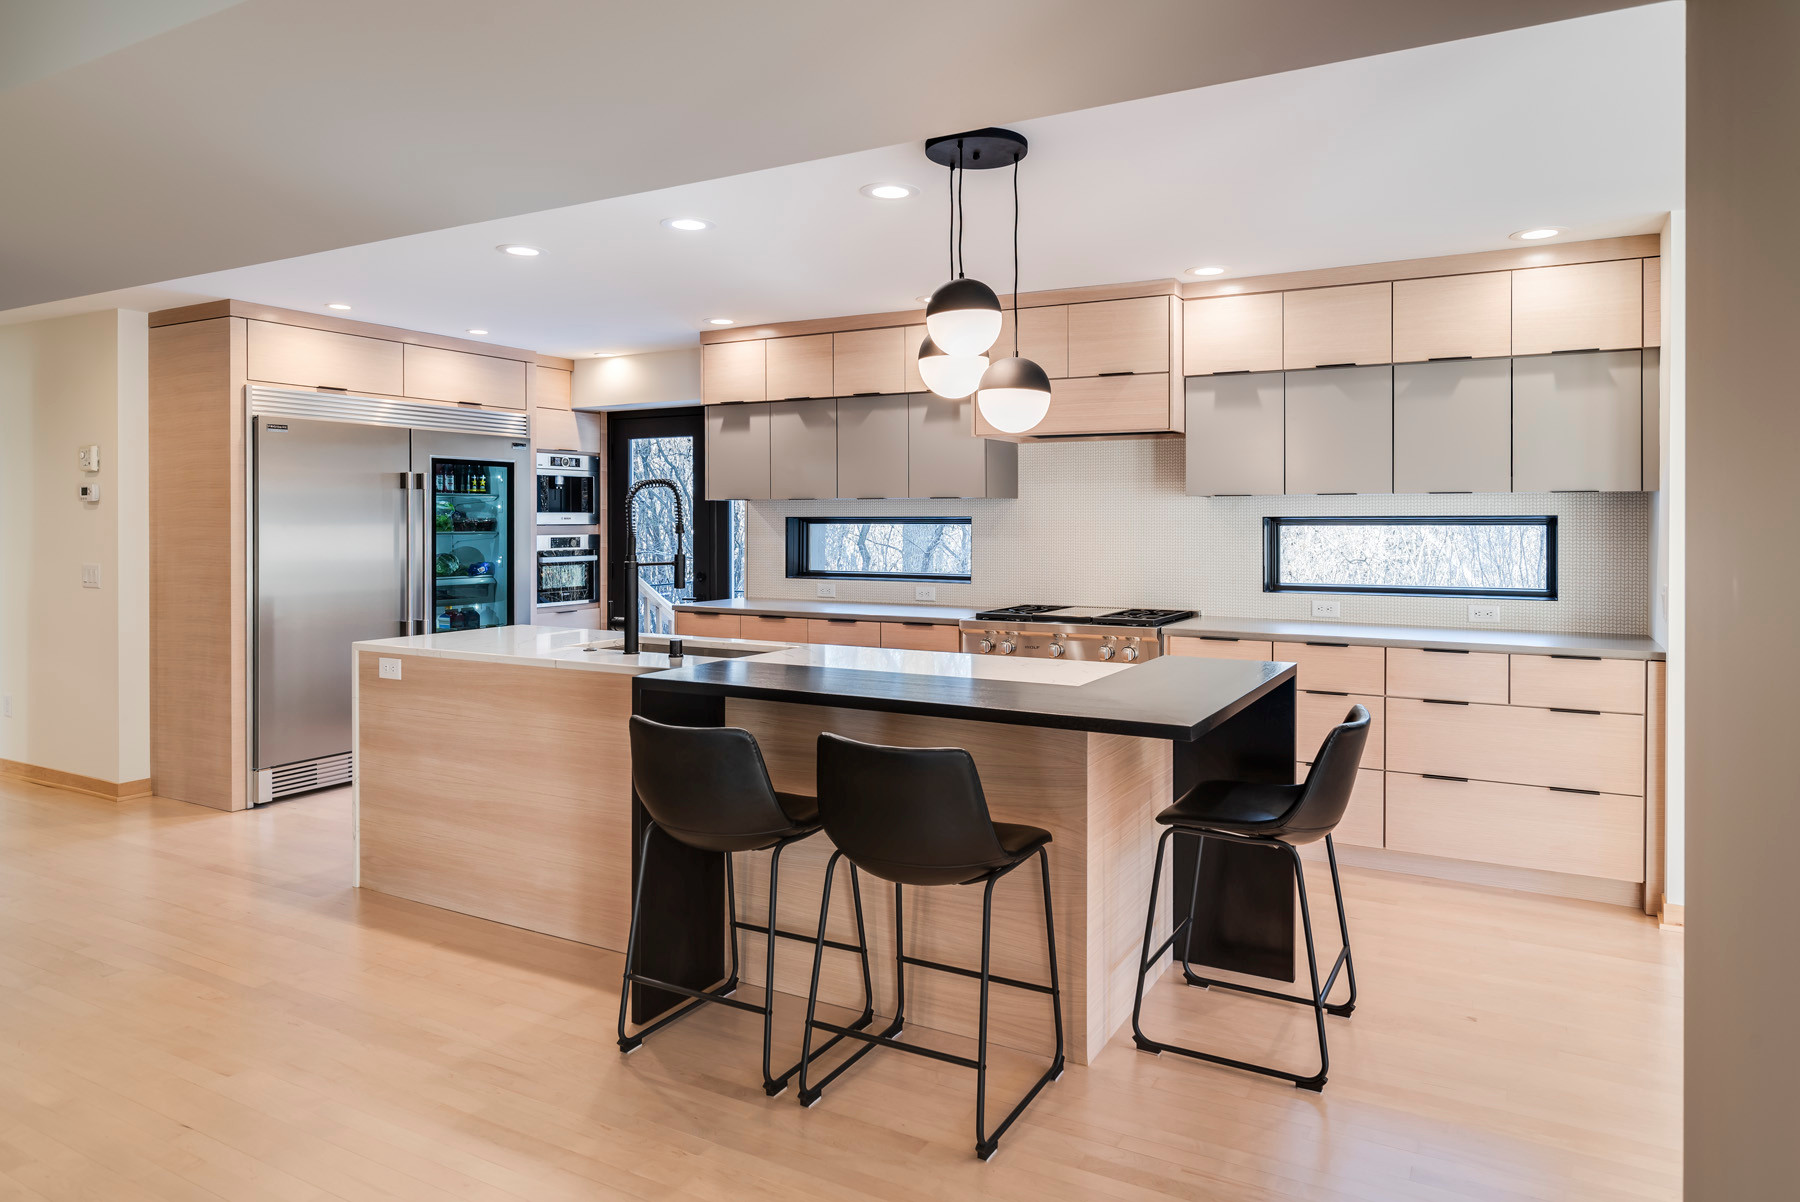 75 Beautiful Kitchen With Light Wood Cabinets Pictures Ideas December 2020 Houzz